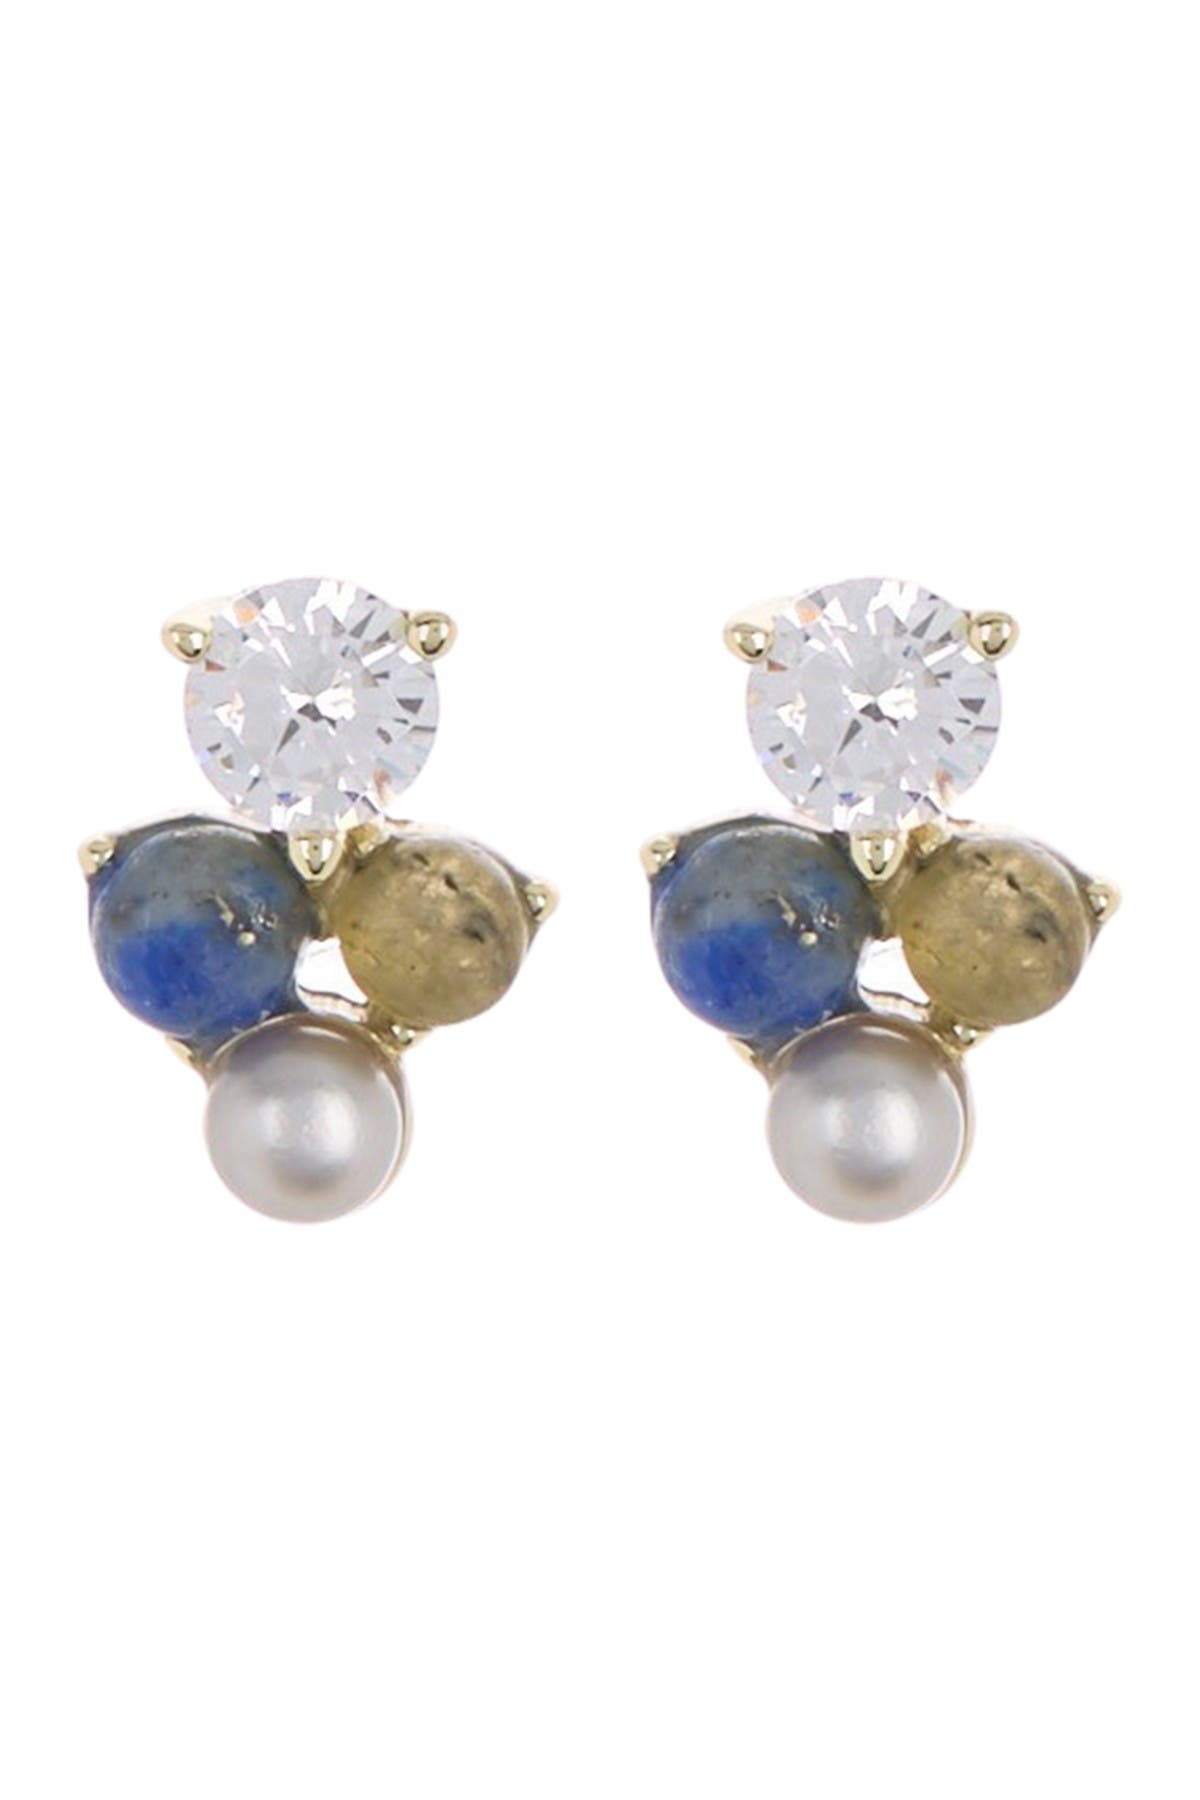 Image of Carolee Donna Sterling Silver Semi-Precious Stone & Freshwater Pearl Stud Earrings